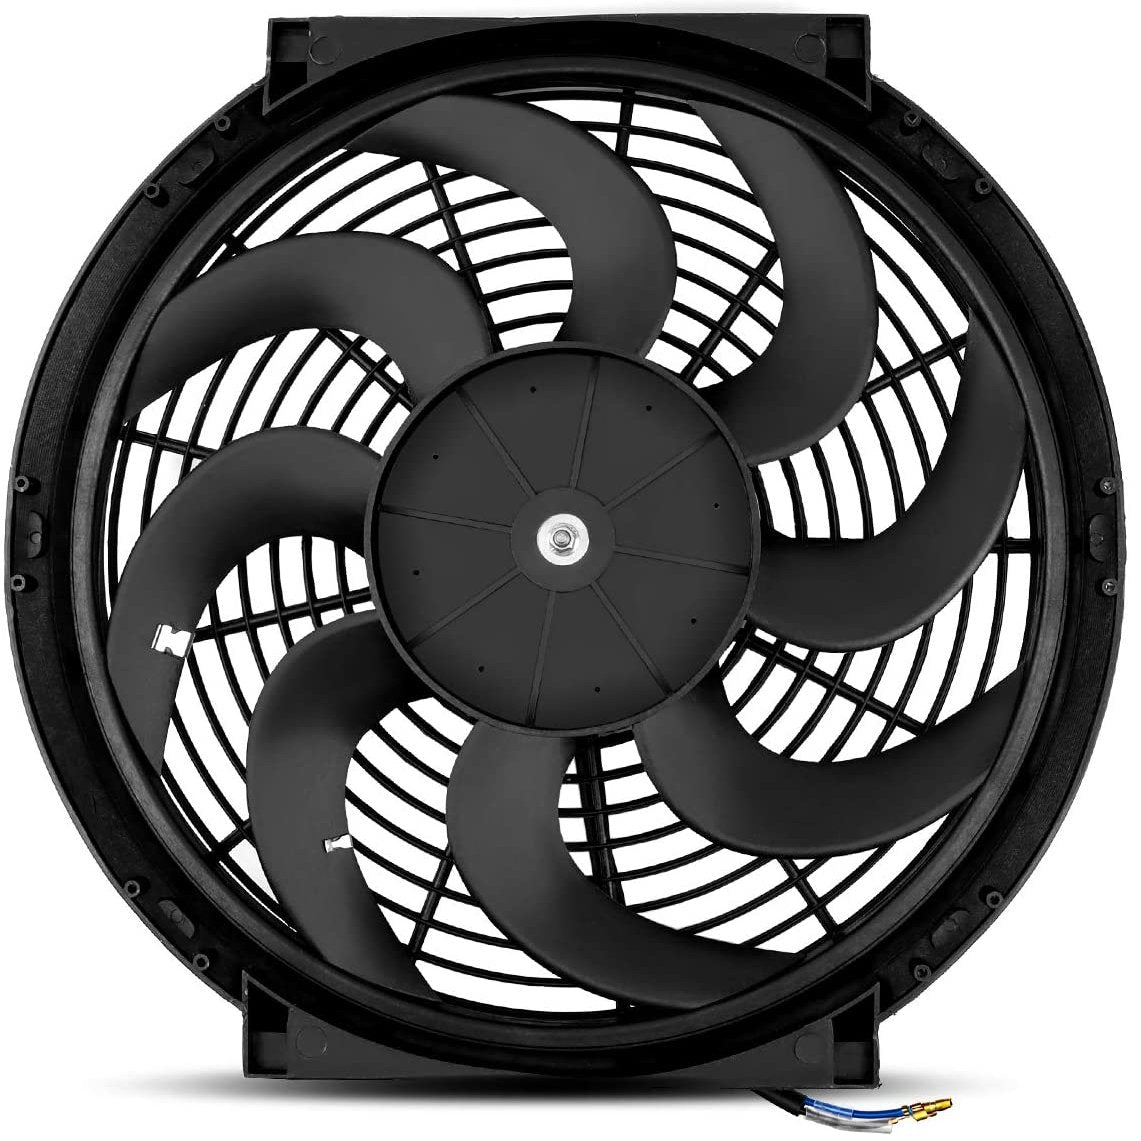 "14"" Inch 12 Volt Electric Engine Radiator Cooling Fan Upgraded 180W Motor Best High CFM Performance-Single Electric Fans-American Volt-American Volt"